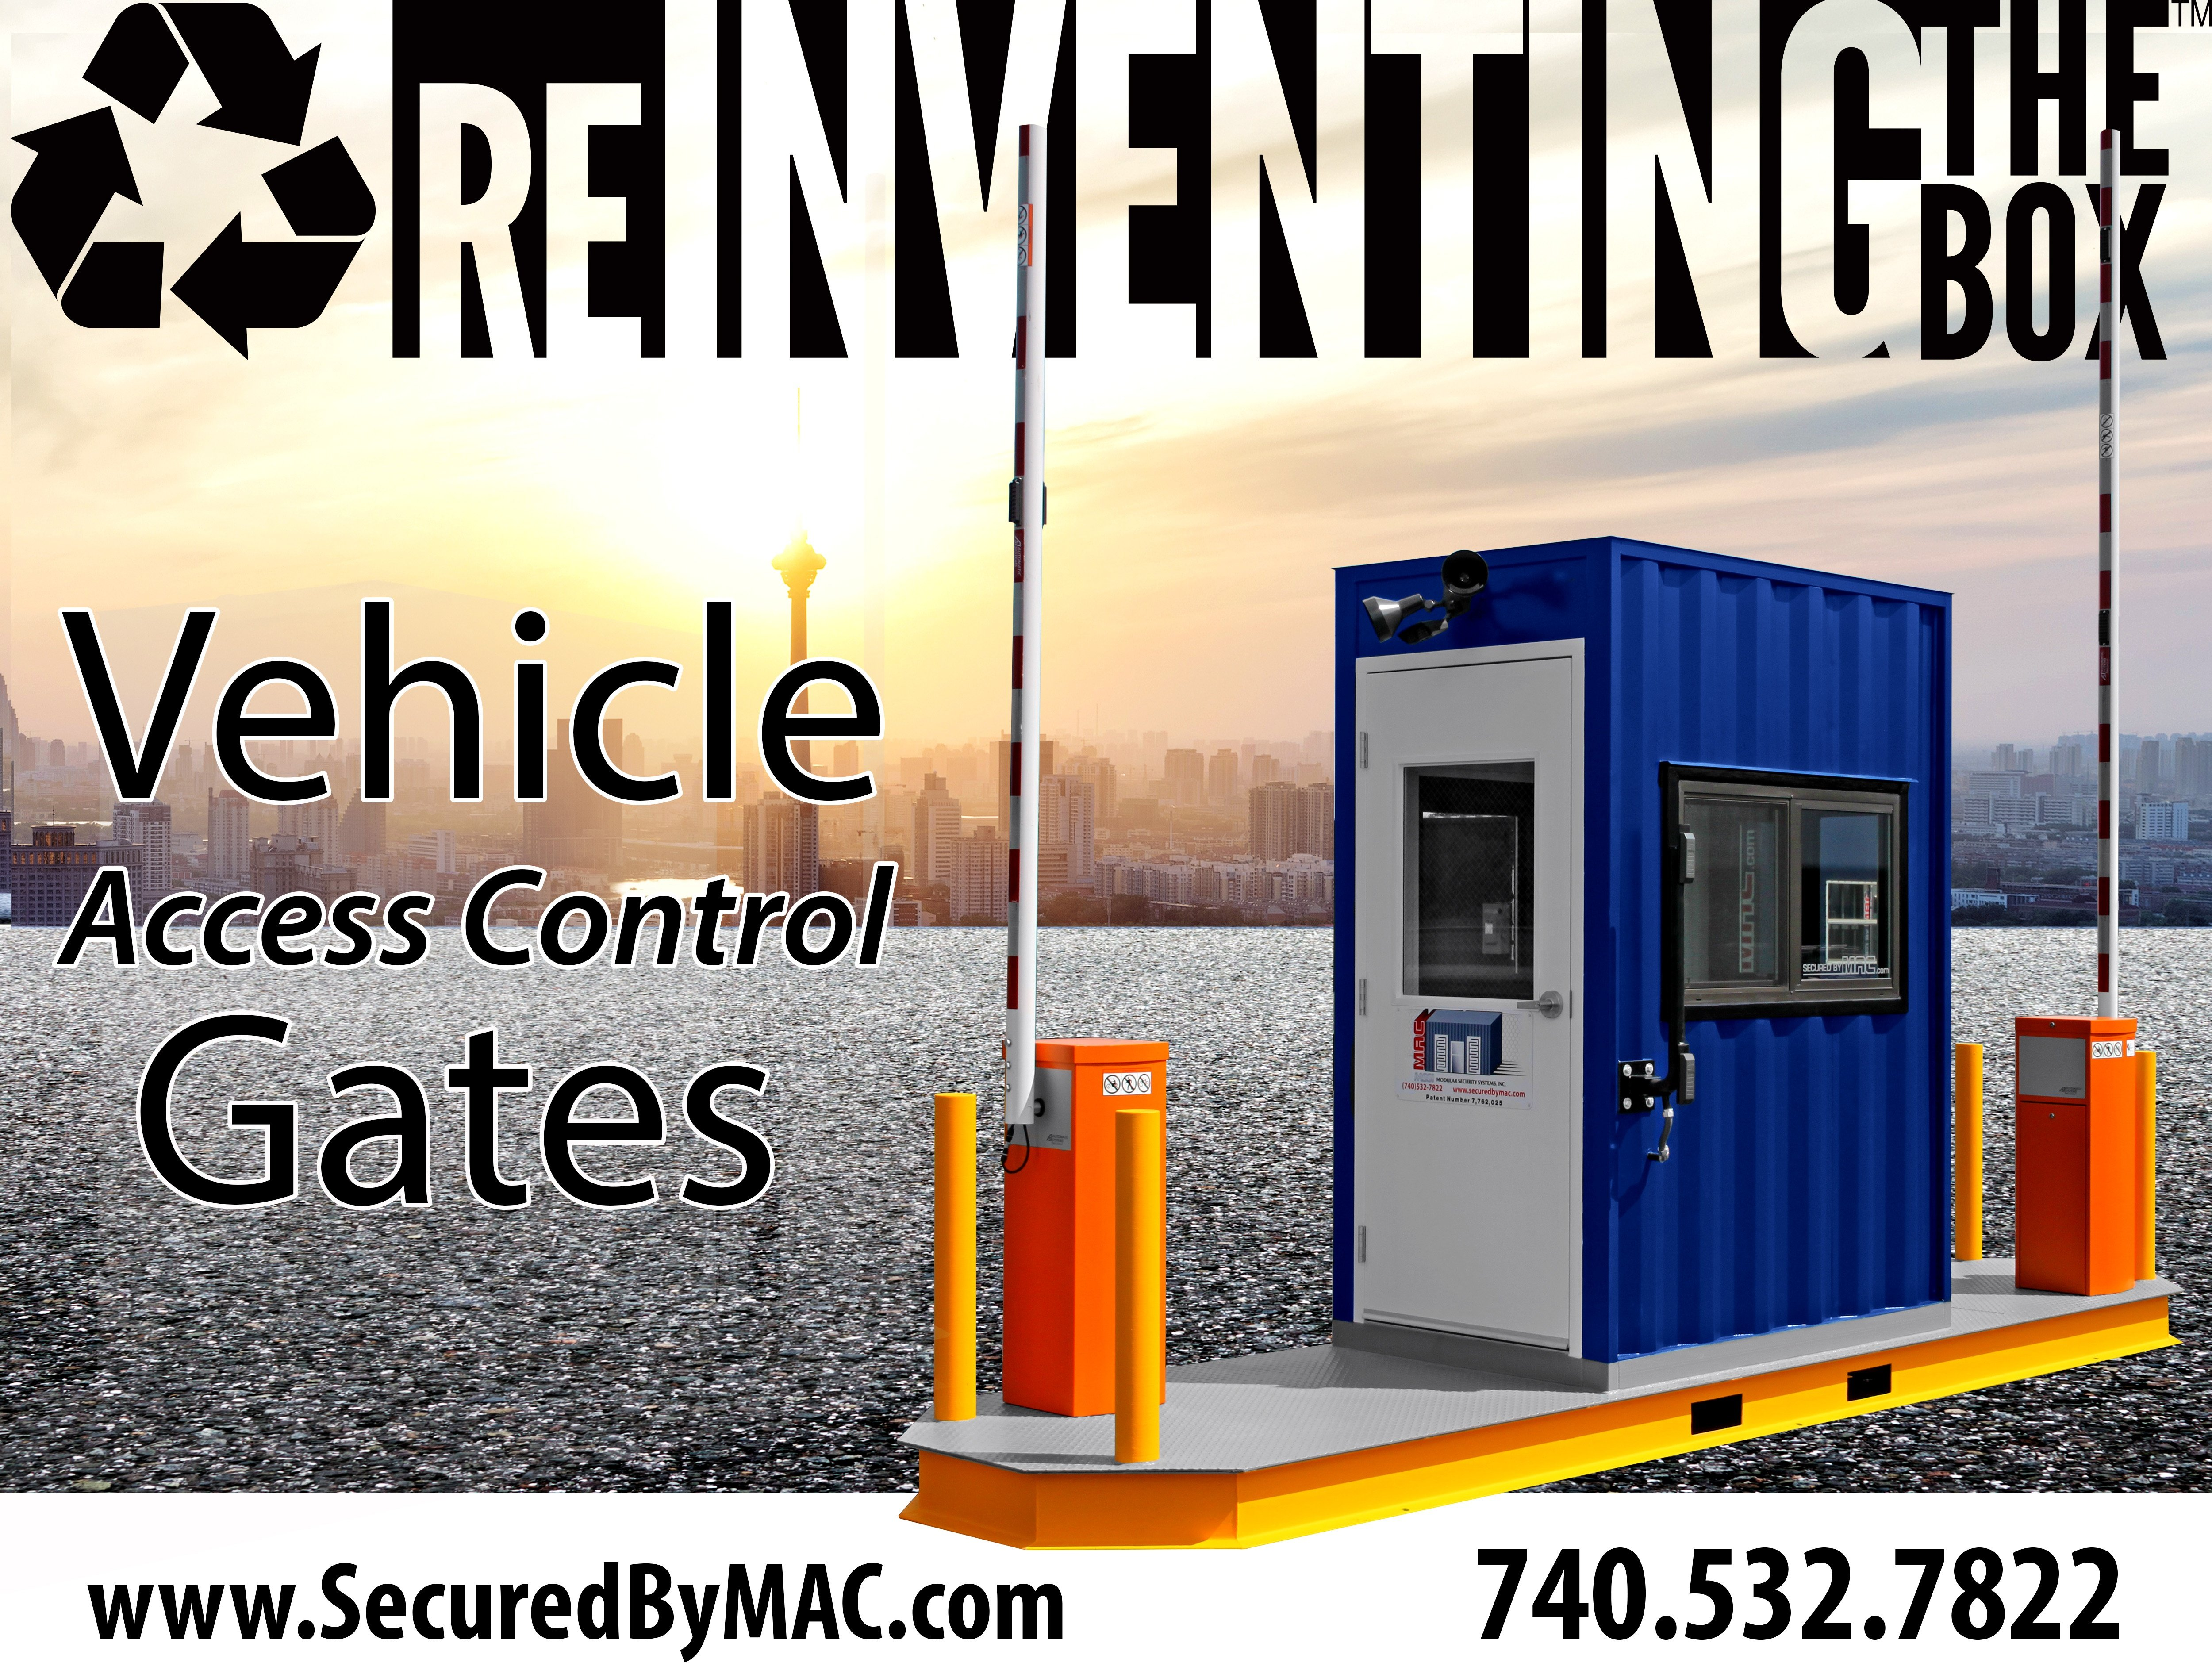 MSSI, Modular Security Systems Inc, modular vehicle access control, portable vehicle access control, vehicle barrier arms, portable vehicle barrier arms, vehicle barrier arms in a guard house, vehicle barrier gate, VAC Portal